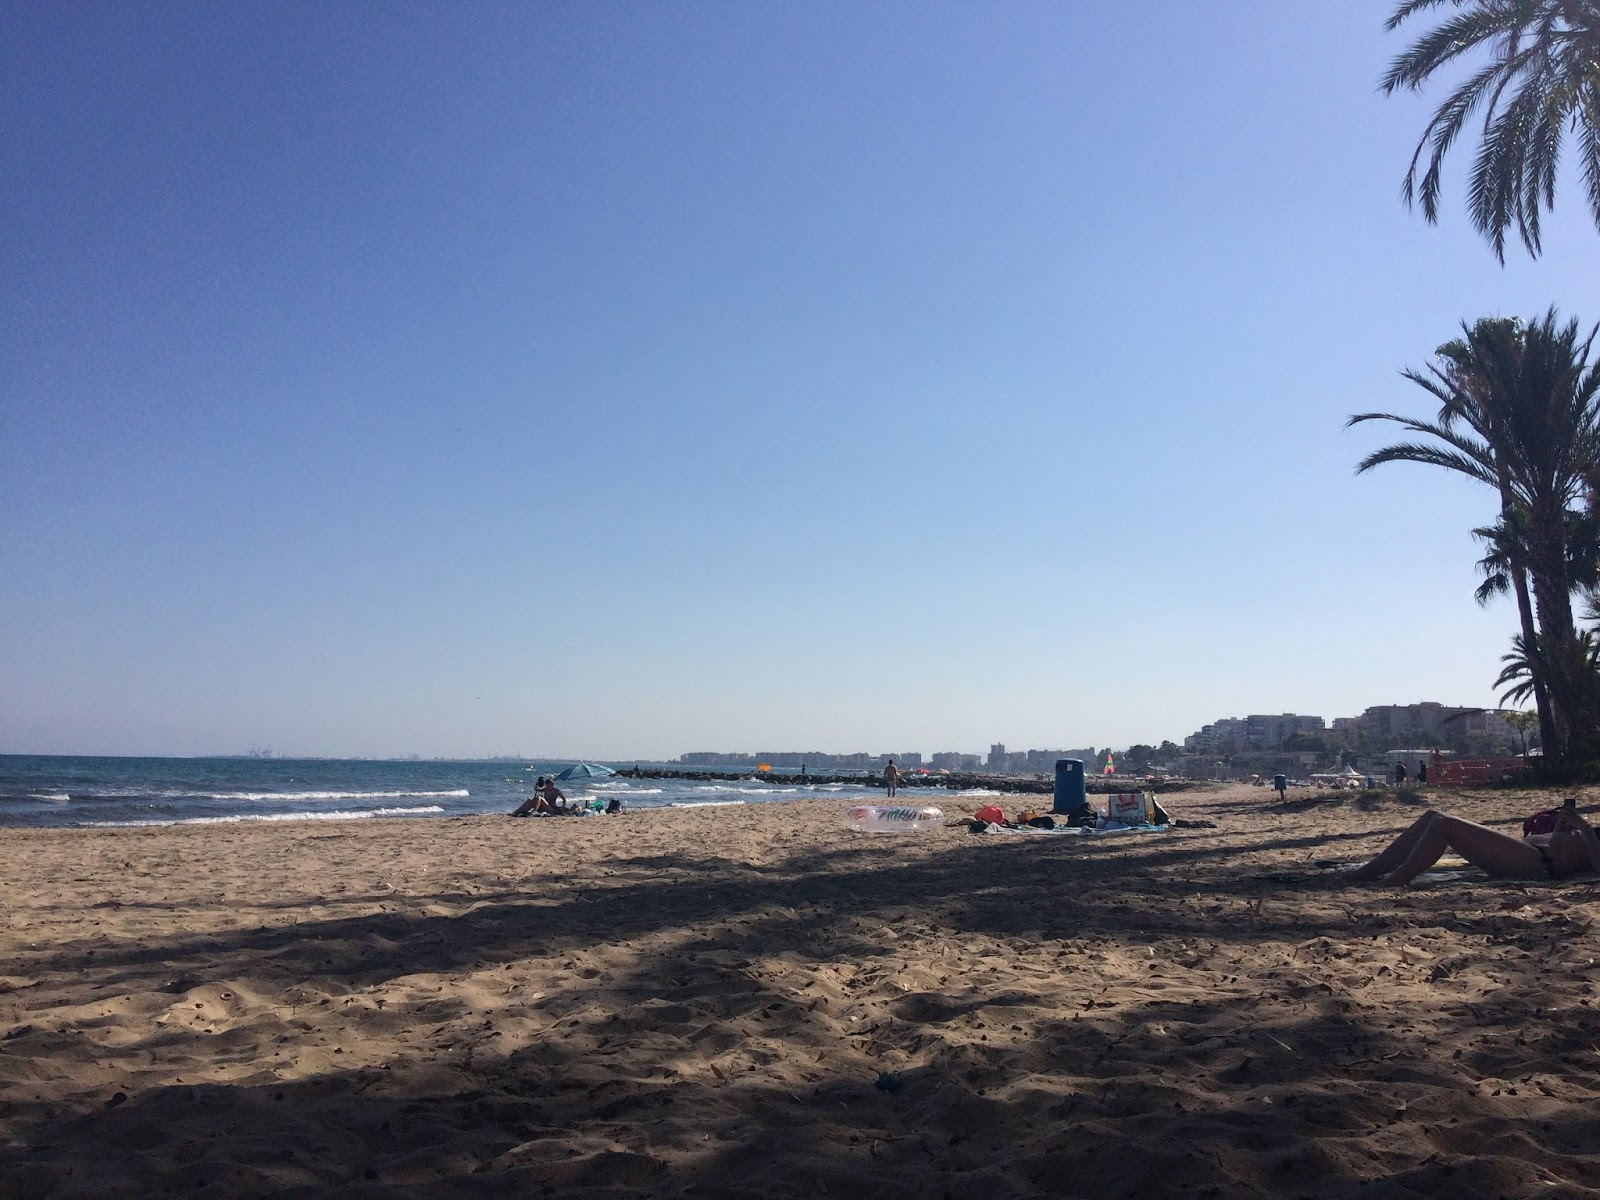 Benicassim beach with blue skies